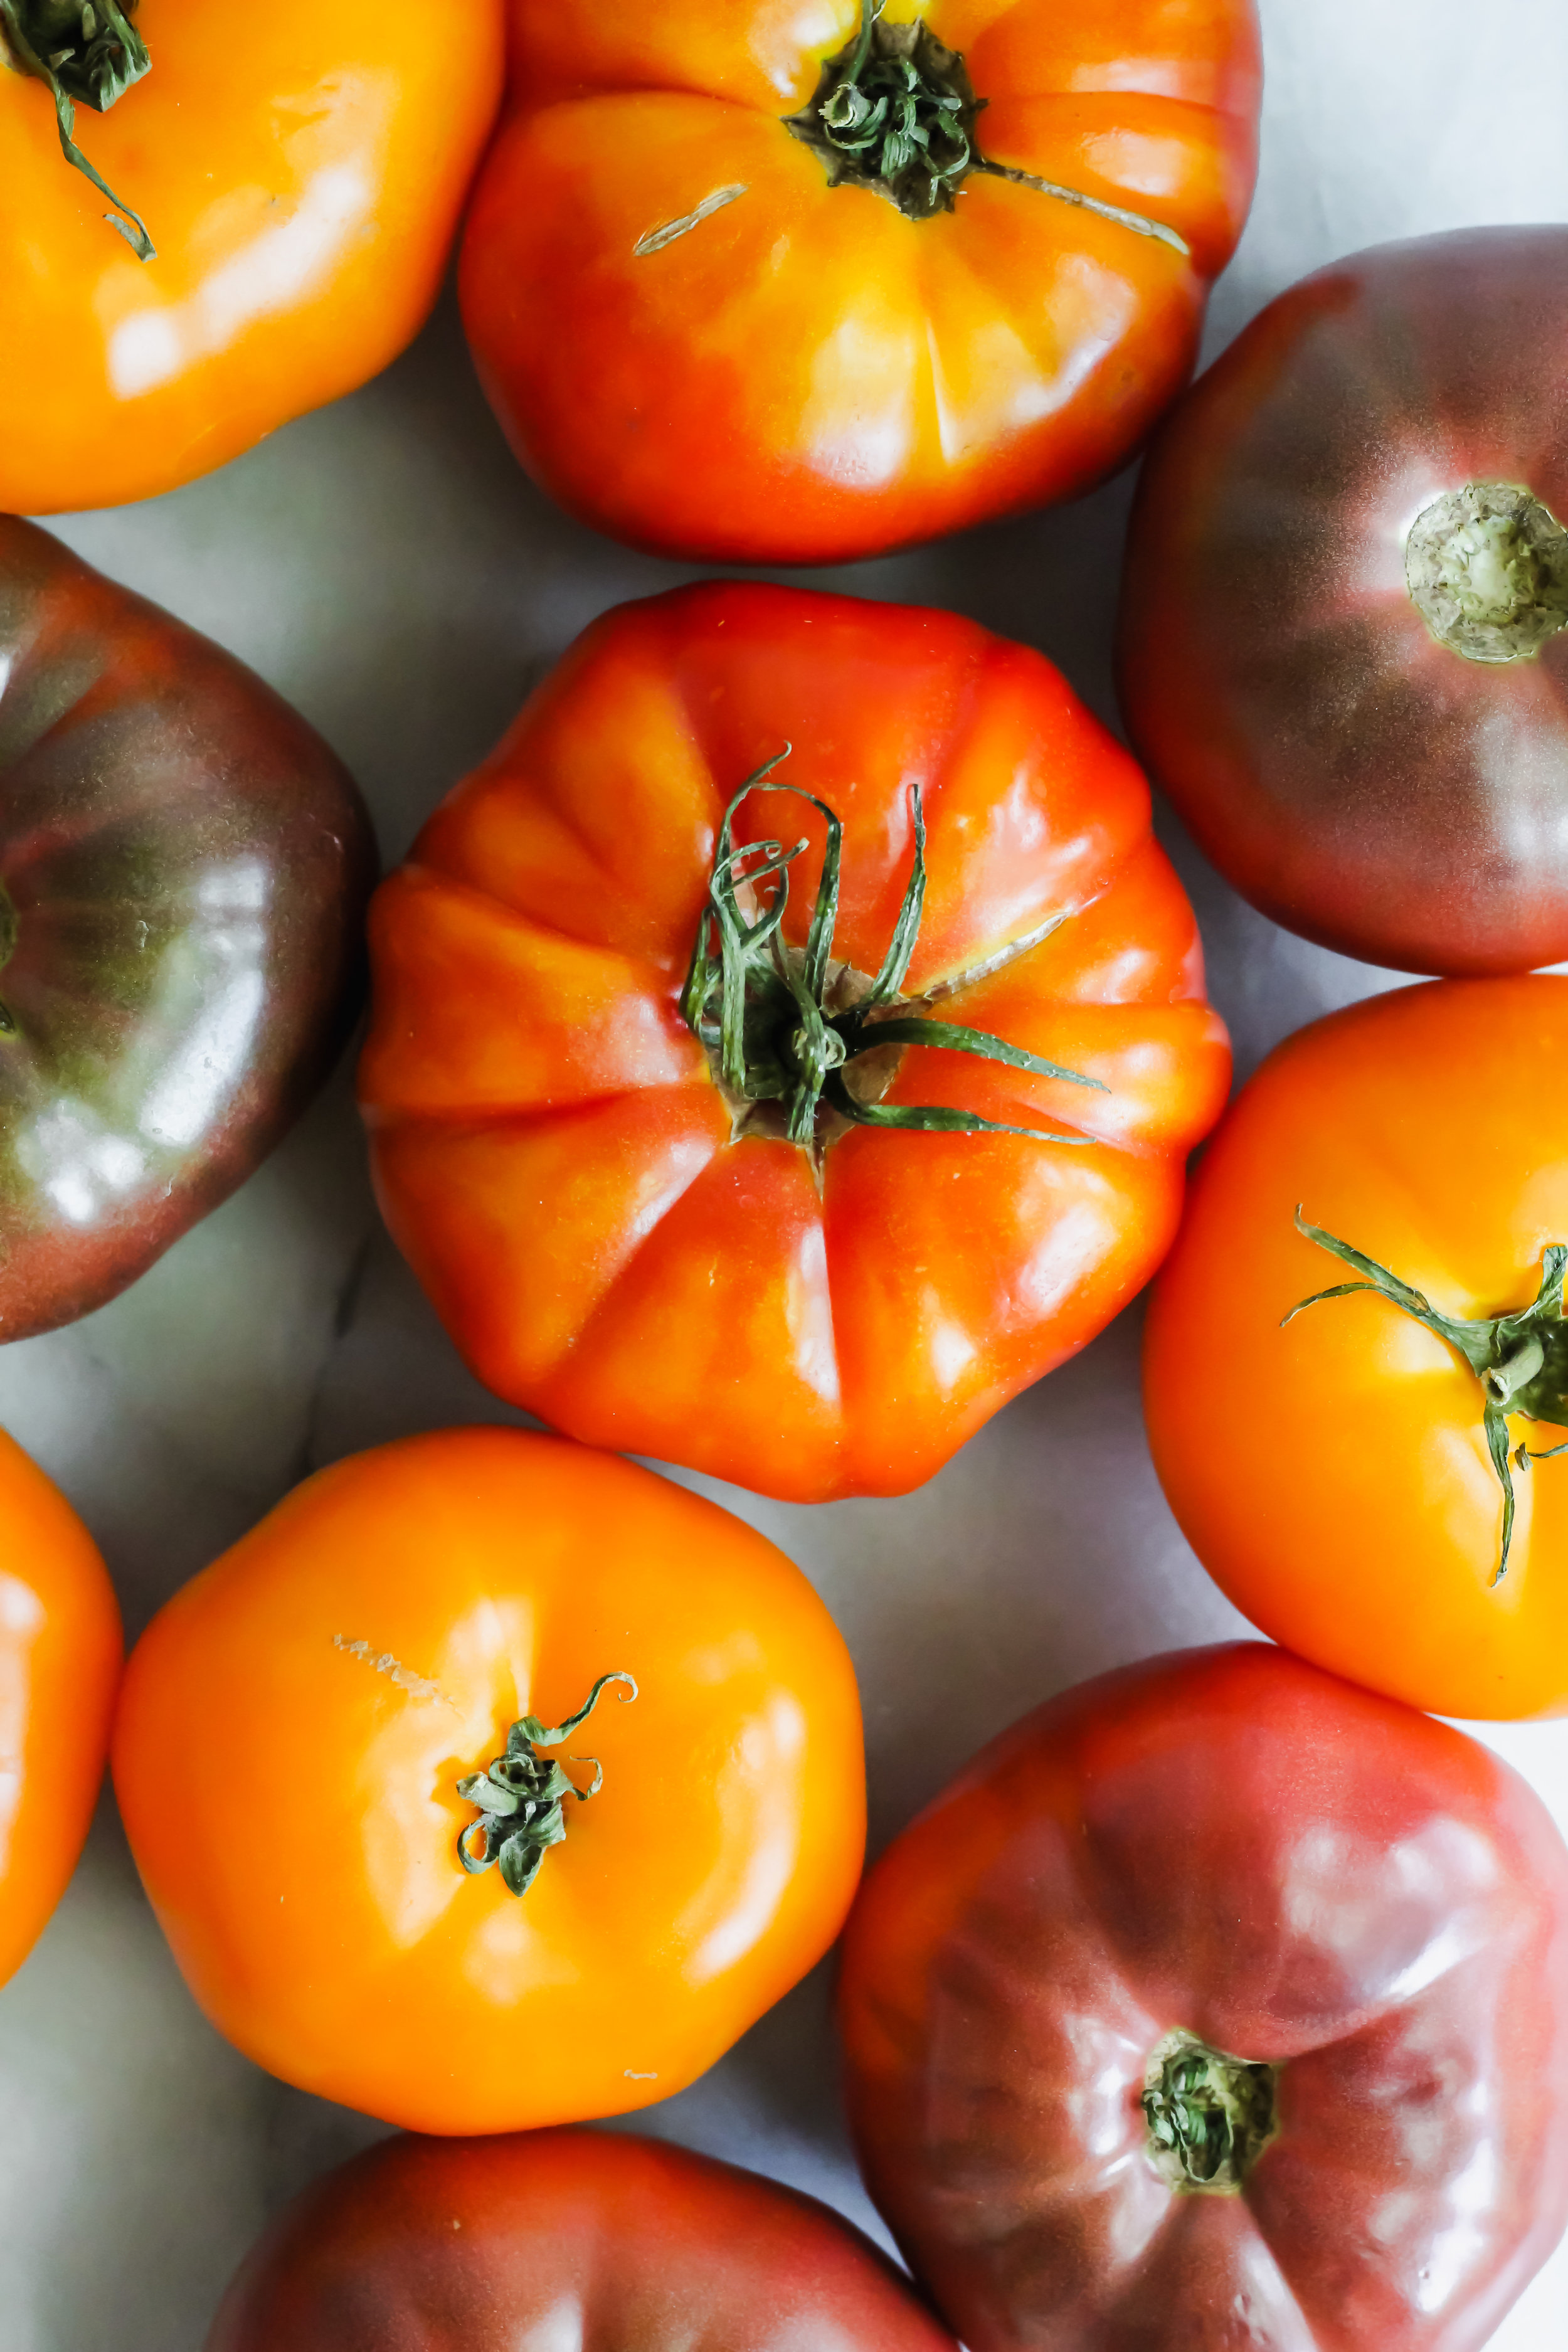 heirloom tomatoes with white background